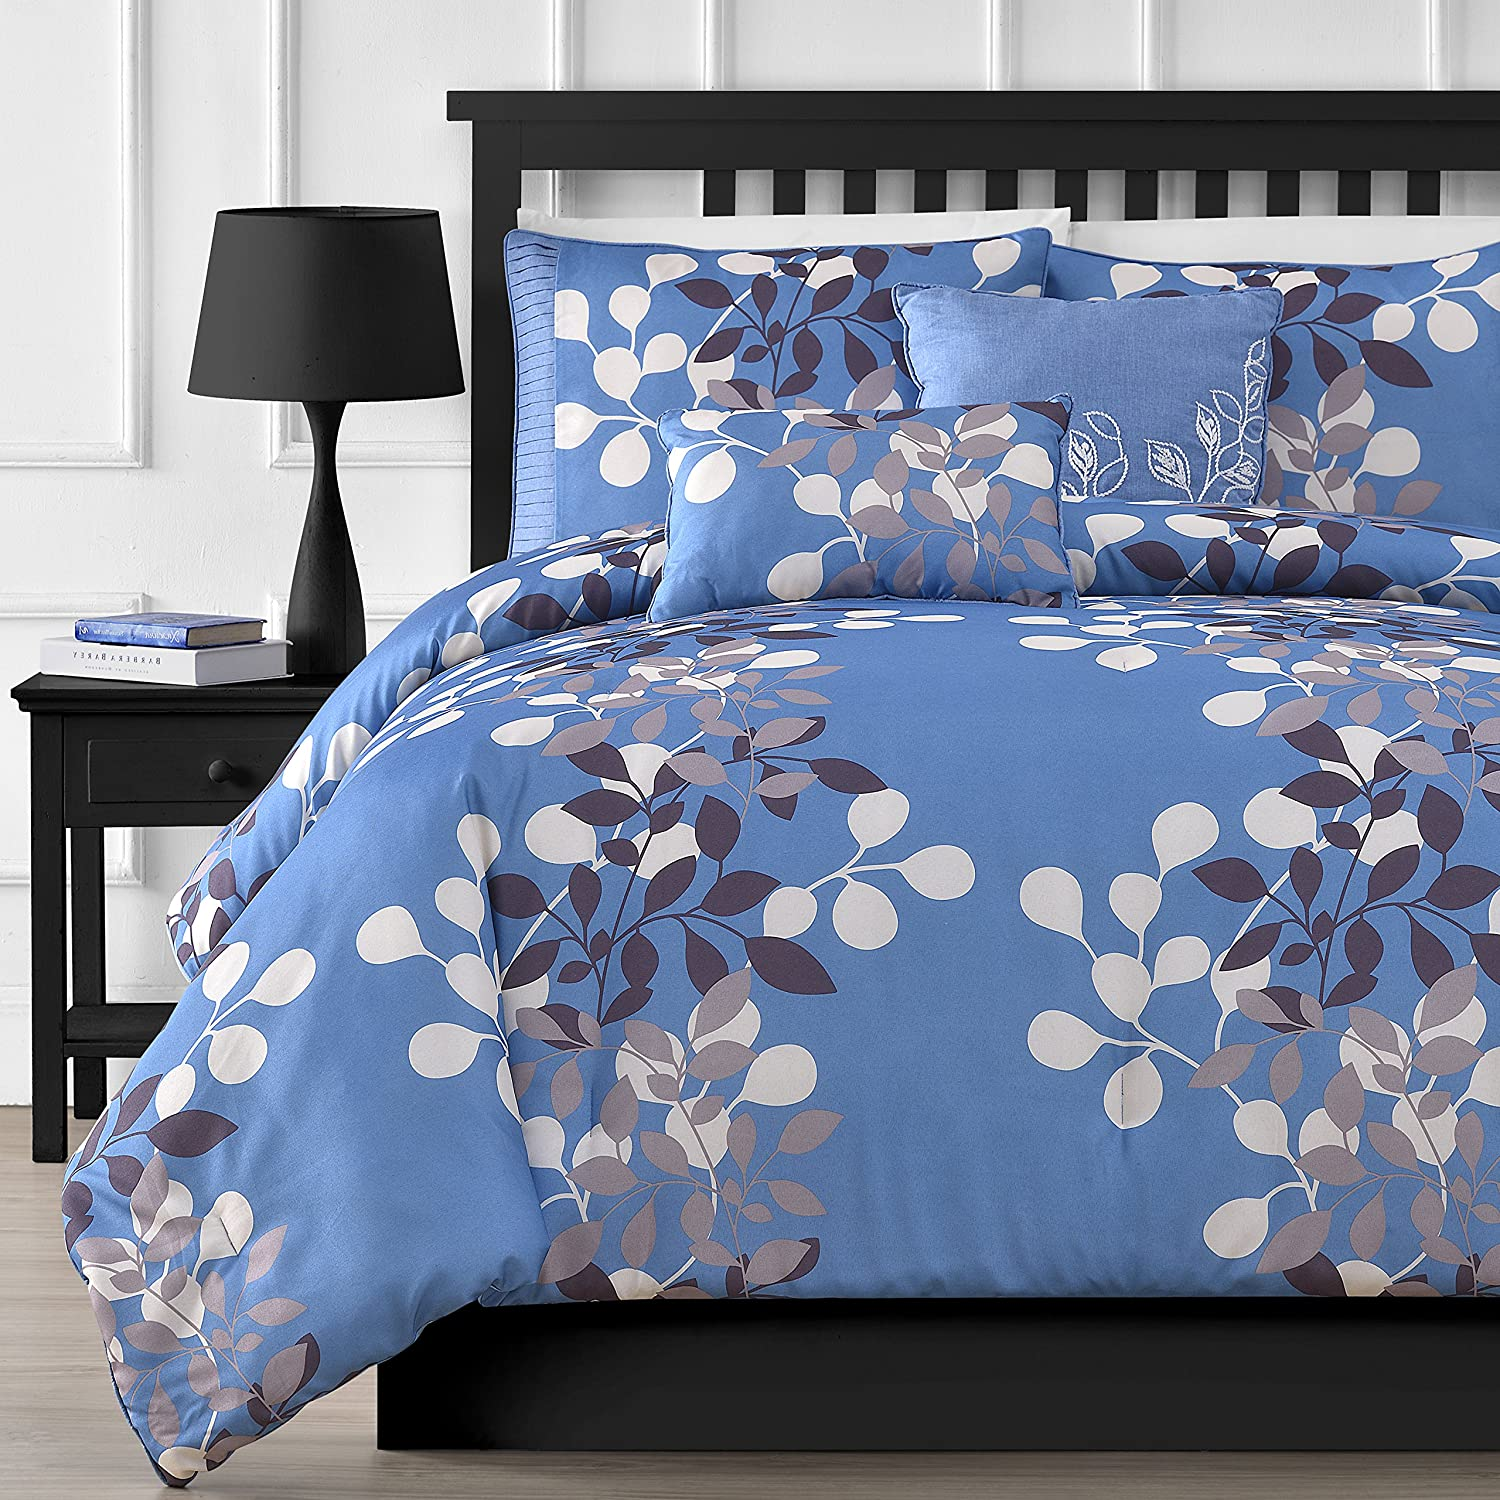 Blue Floral Bedding Sets Sale Ease Bedding With Style